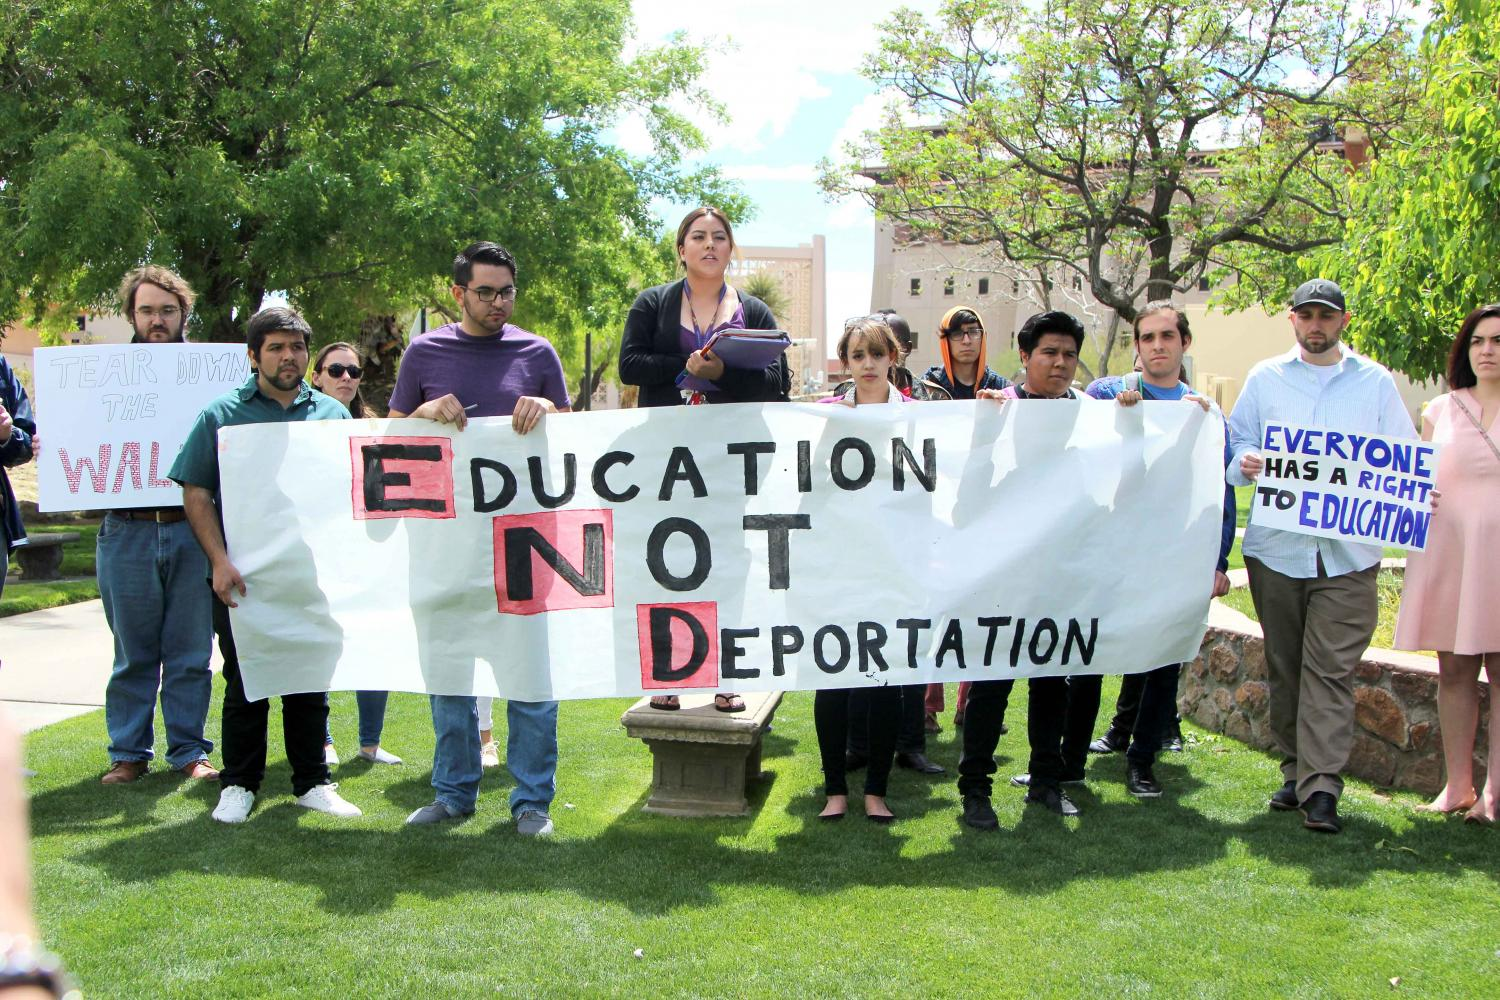 Education Across Borders seeks to use the same energy that Education Not Deportation (E.N.D.) used, but Education Across Borders promises to be more policy-driven